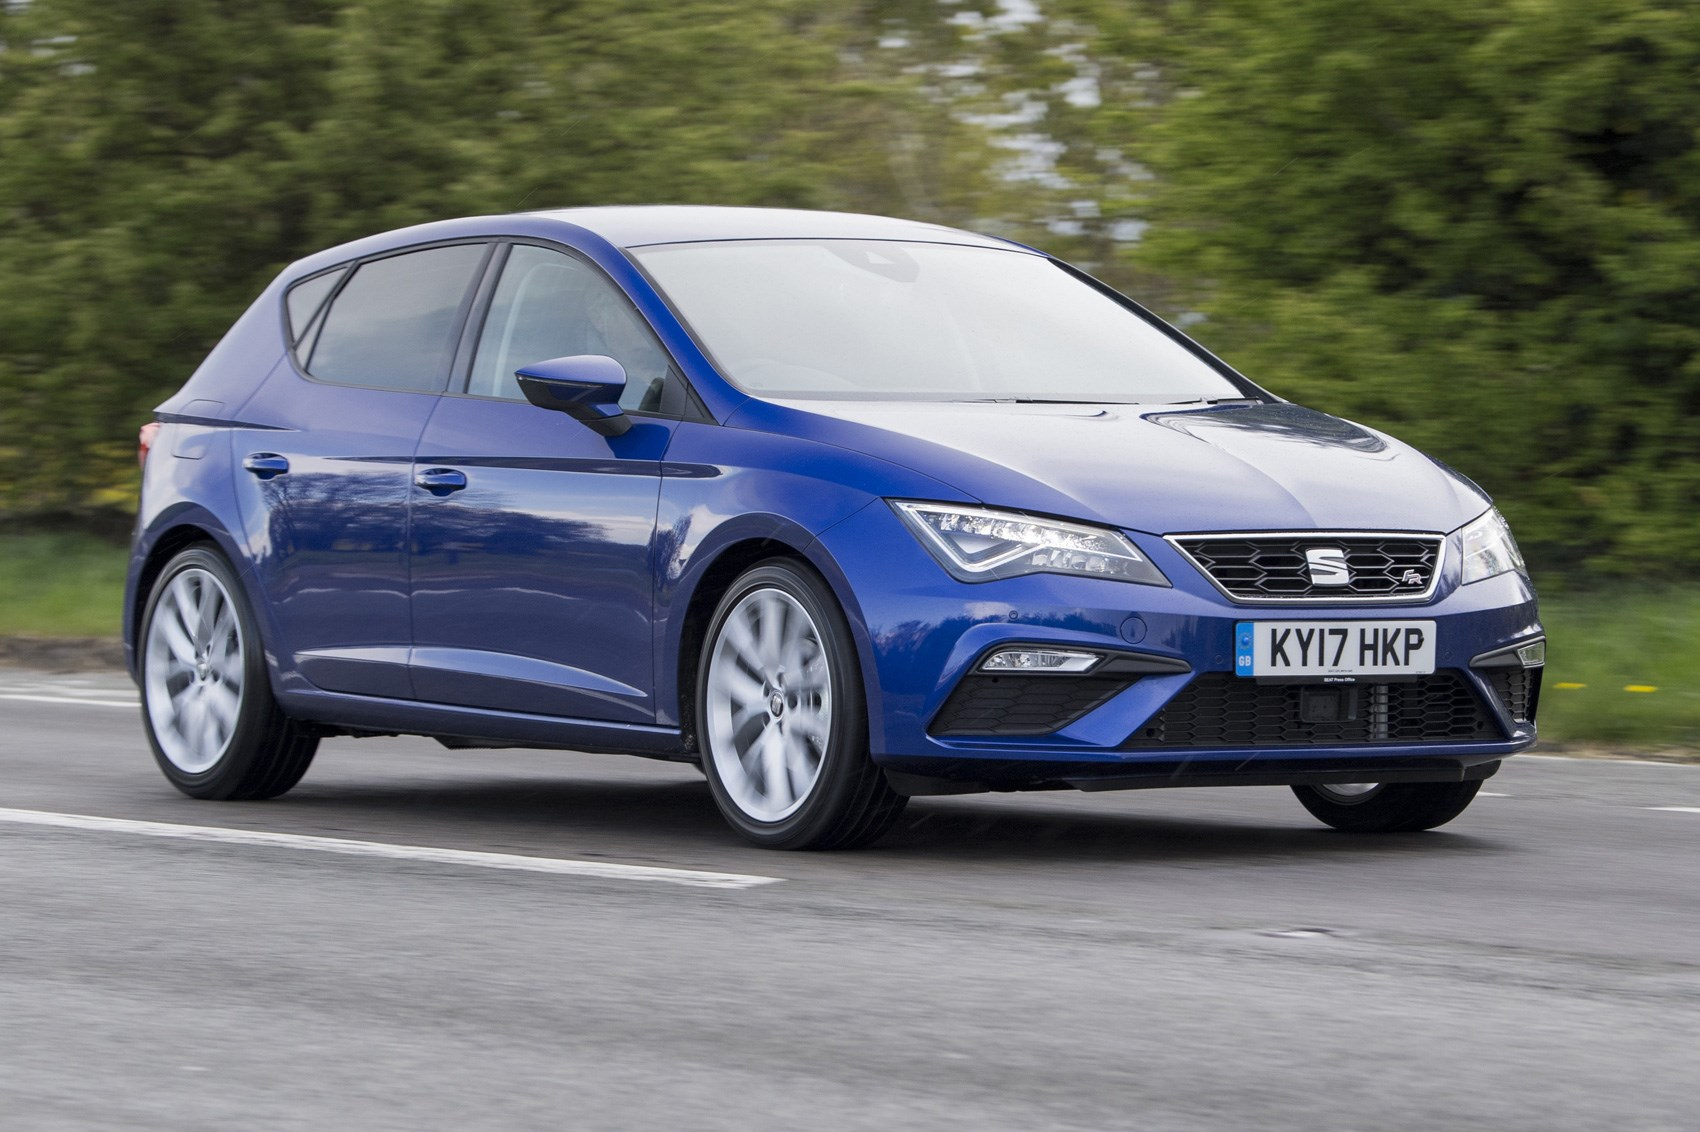 seat leon 1 4 tsi 150 fr technology 2017 review by car magazine. Black Bedroom Furniture Sets. Home Design Ideas